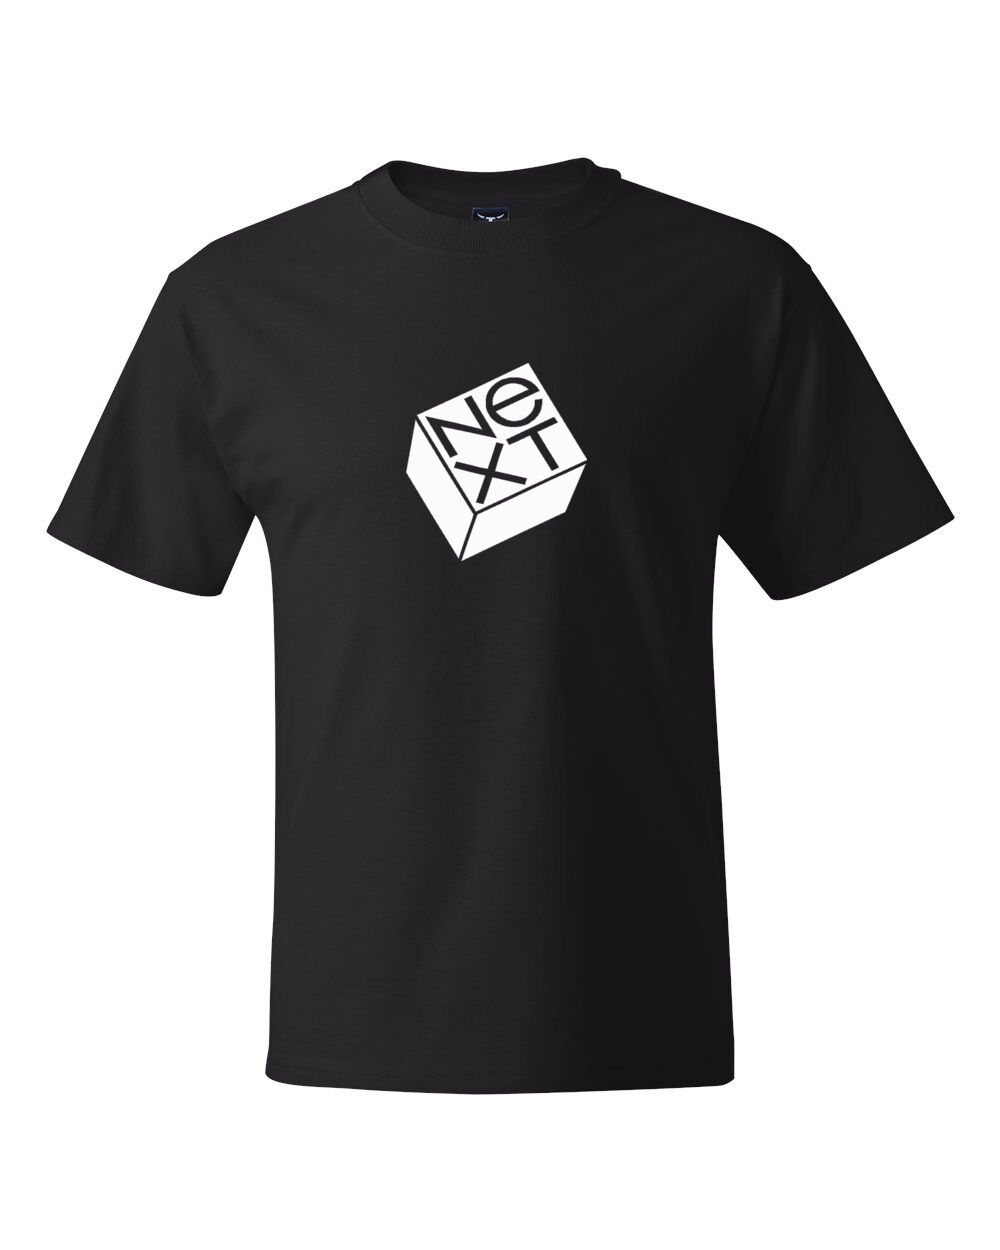 Next Logo Retro Computers Geek T Shirts New 2019 Men'S Casual Letter Printed Top Quality Printed Shirts